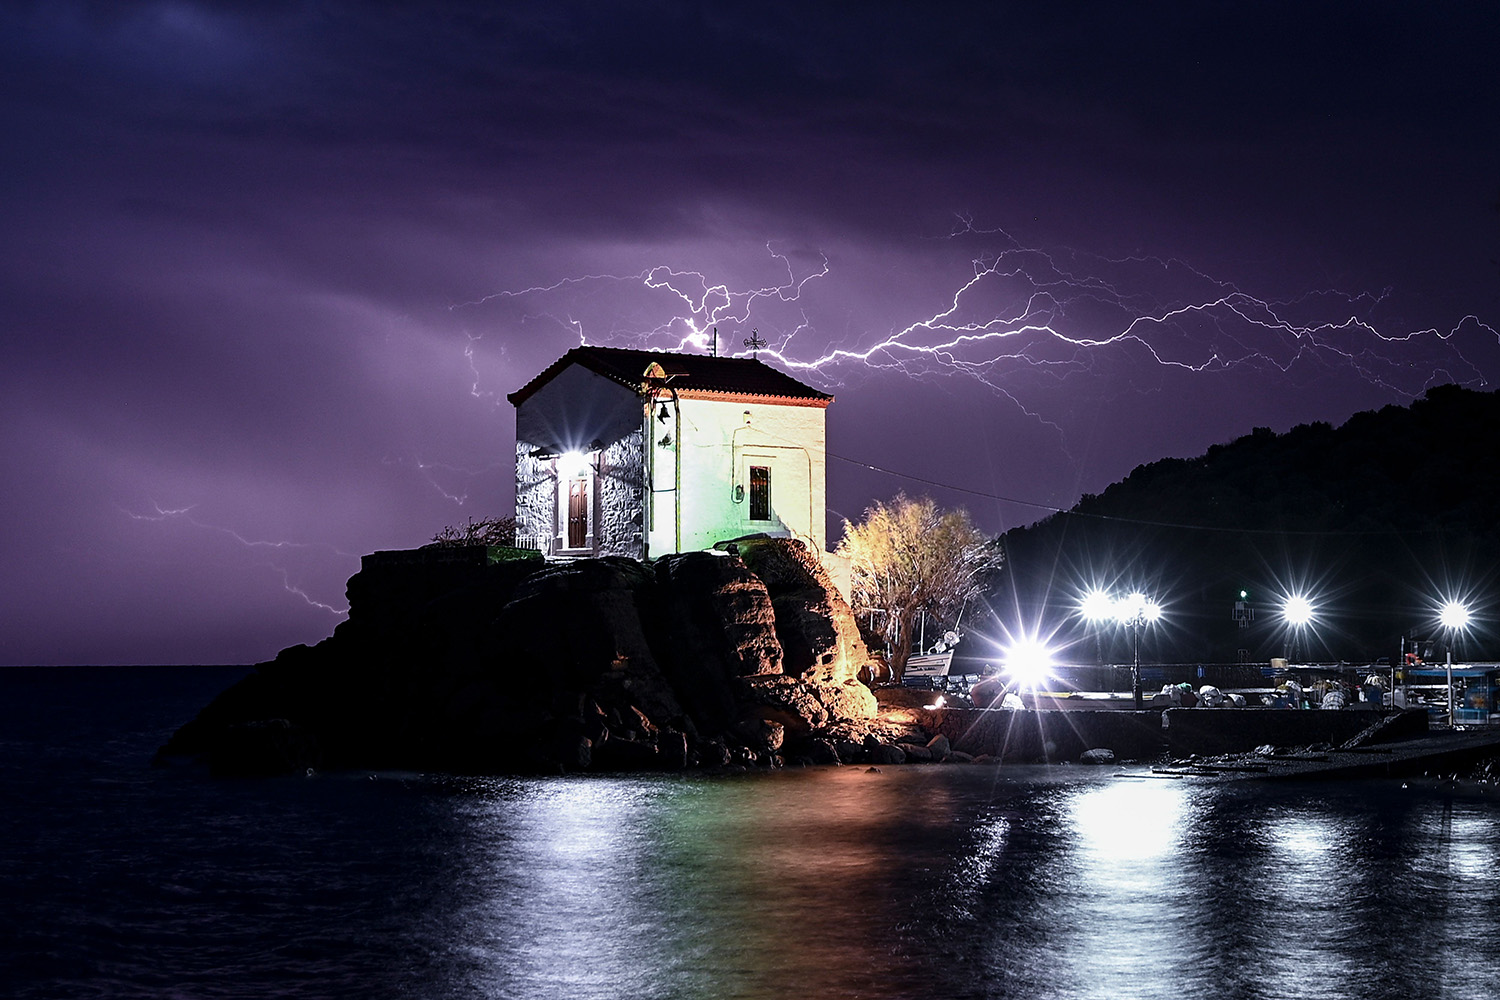 Lightning  strikes behind the chapel of Panagia Gorgona in the village of Skala Sykamias, north of Lesbos, on Feb. 27. ARIS MESSINIS/AFP via Getty Images